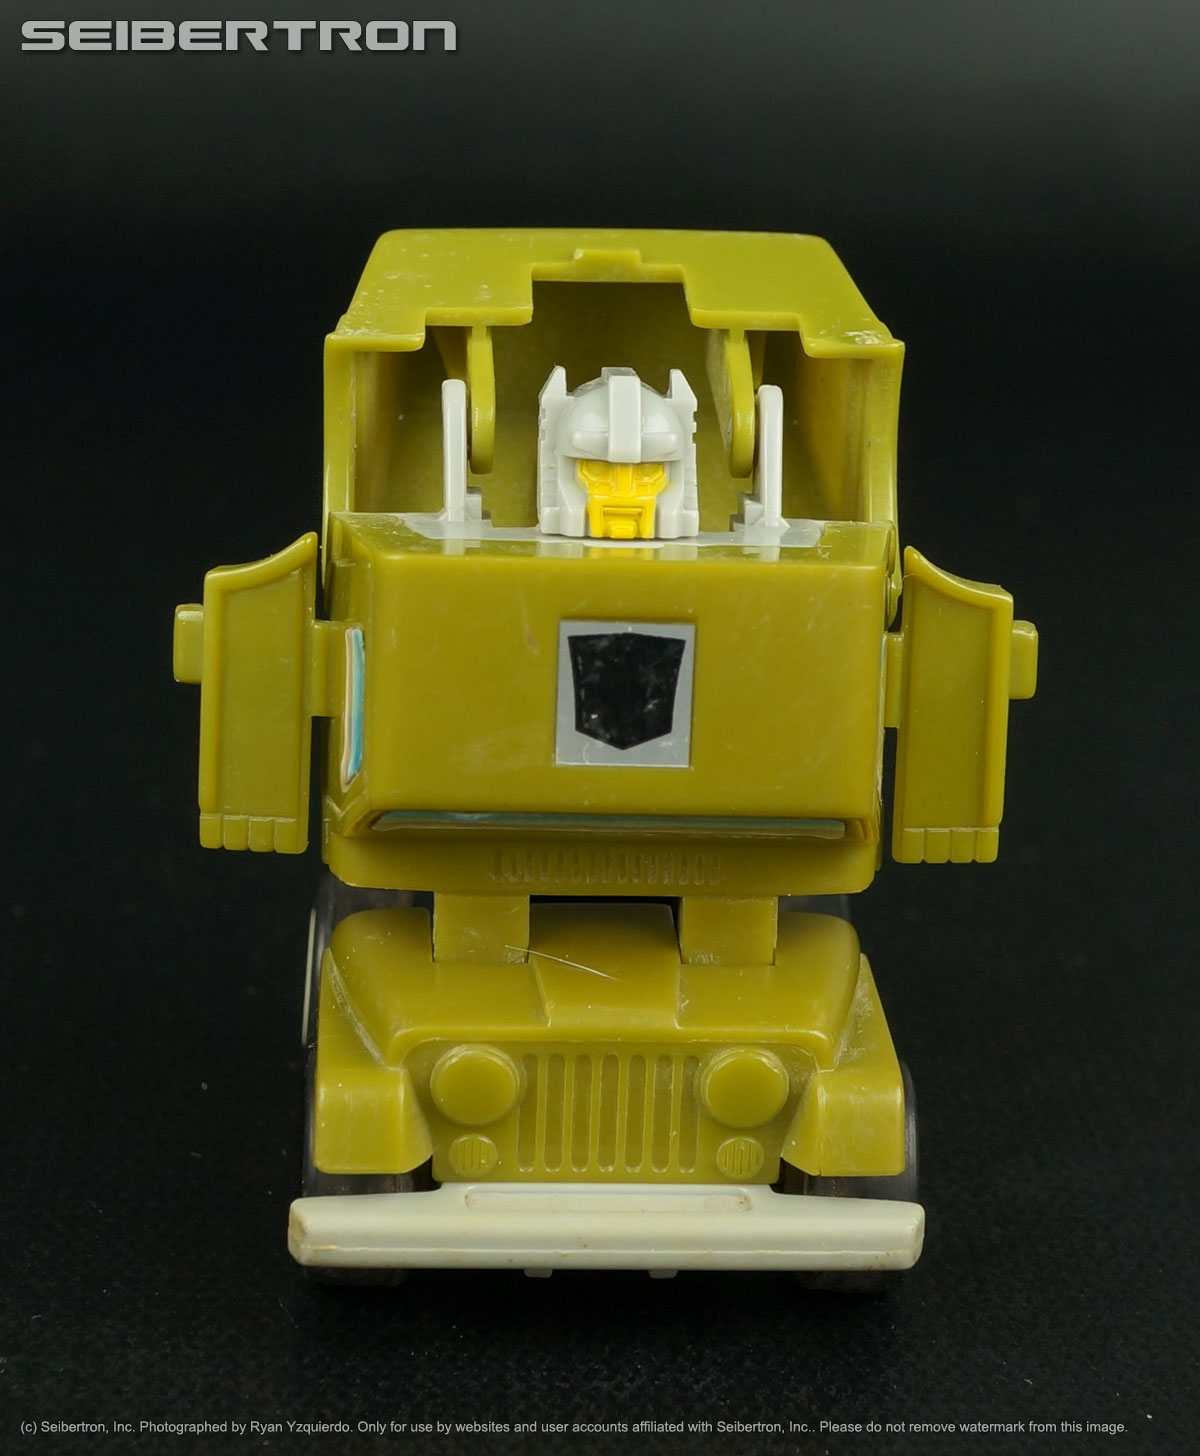 Transformers listings from Seibertron.com: ROLLBAR Transformers G1 Throttlebot Generation 1 Hasbro 1987 vintage